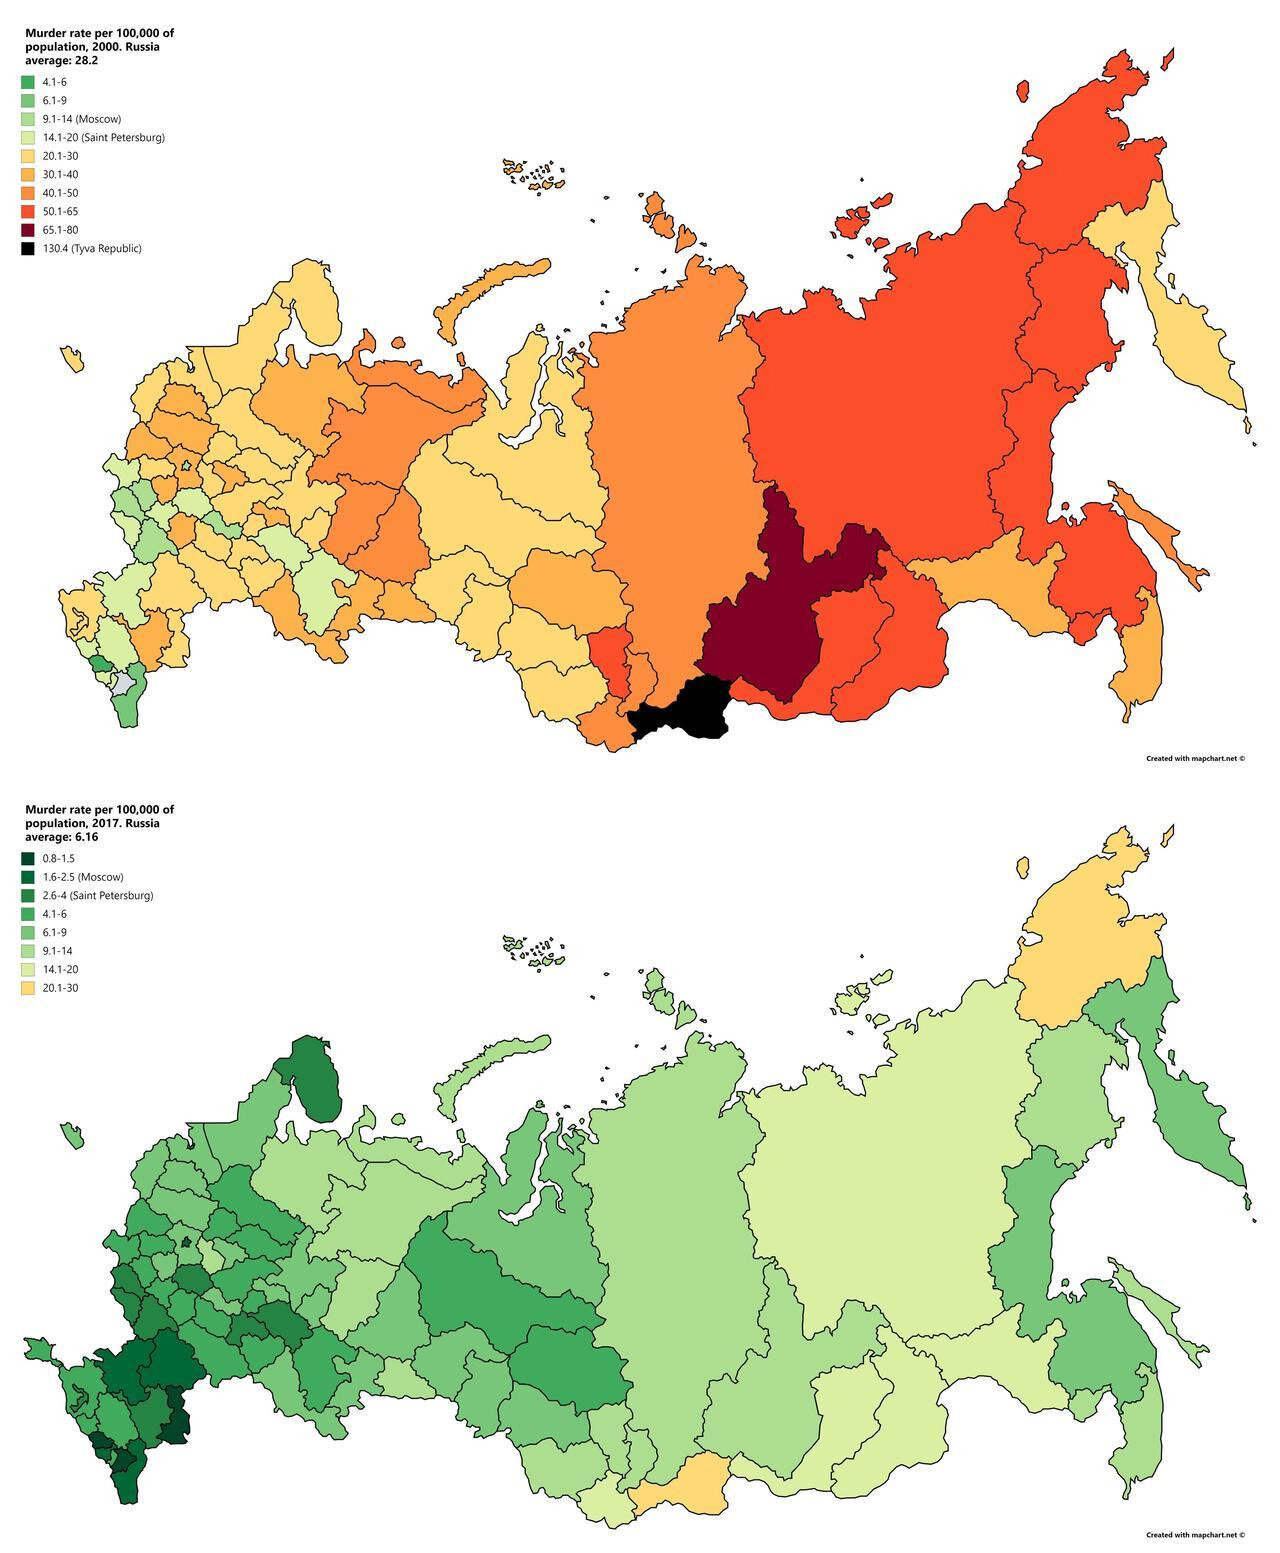 murders in Russia in 2000 and 2017